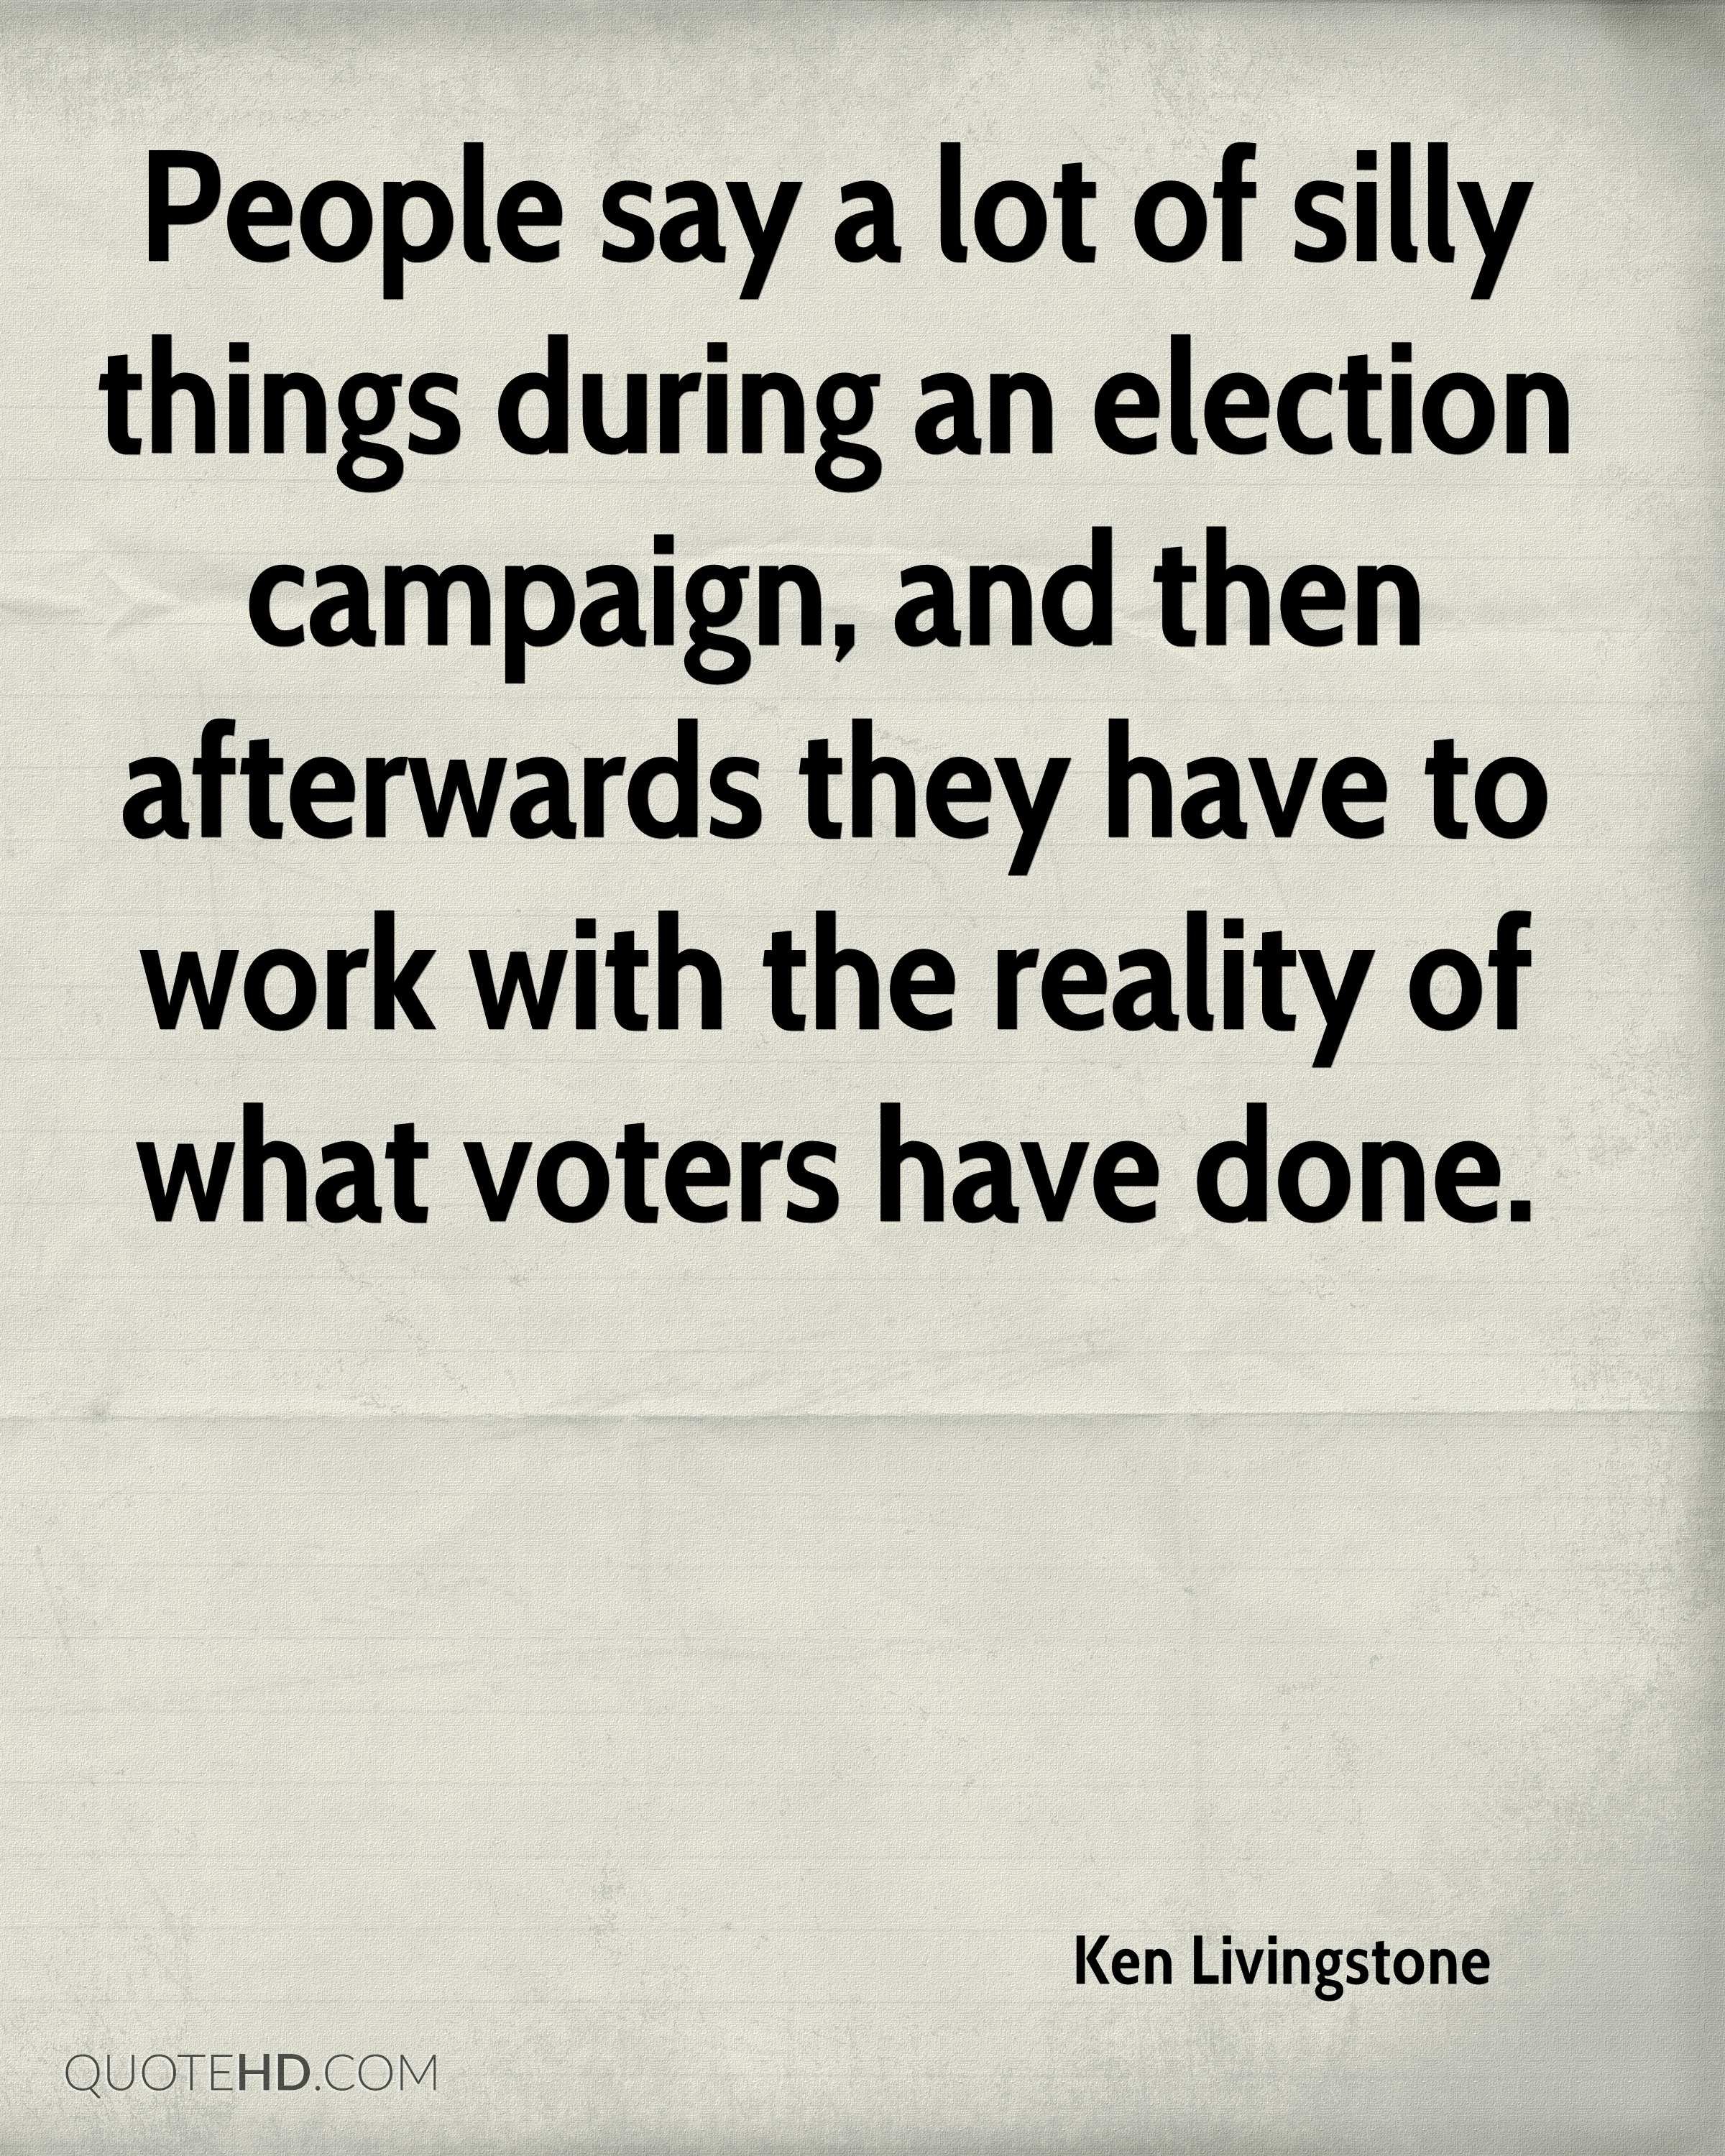 People say a lot of silly things during an election campaign, and then afterwards they have to work with the reality of what voters have done.